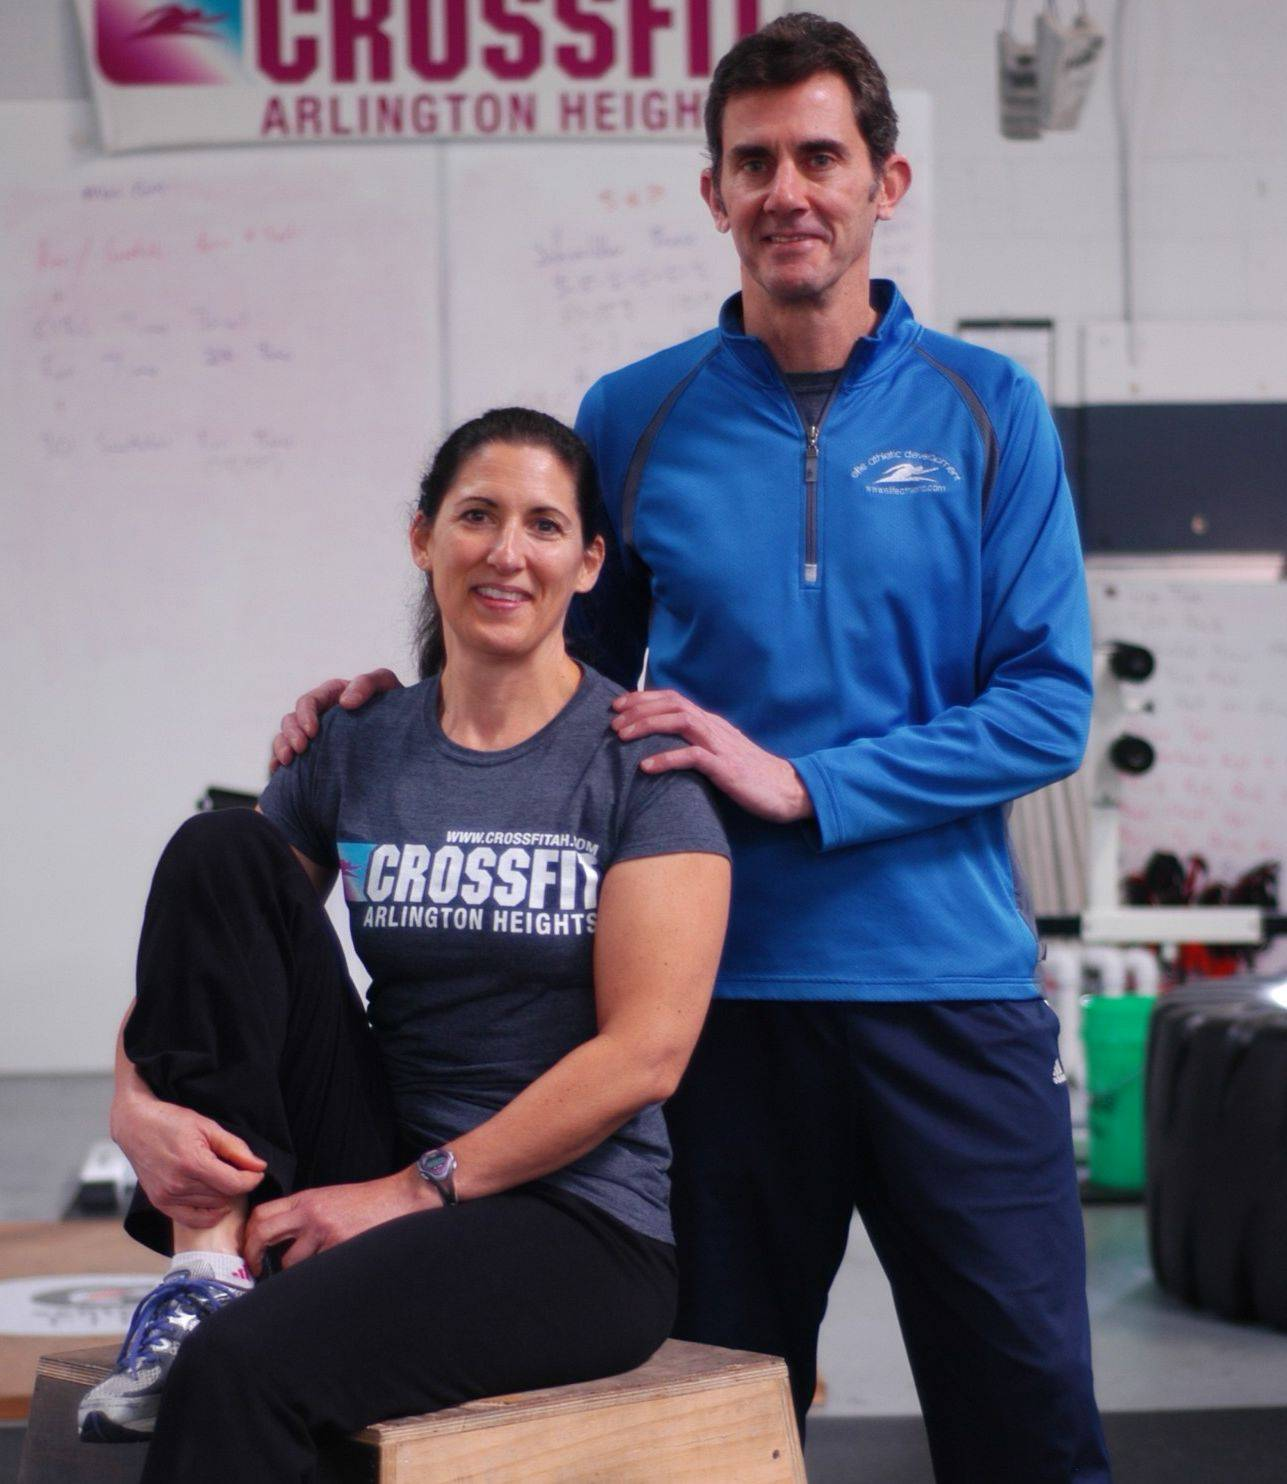 Karen Stoychoff Inman and her husband Jim Inman own and operate Elite Athletic Development in Arlington Heights.